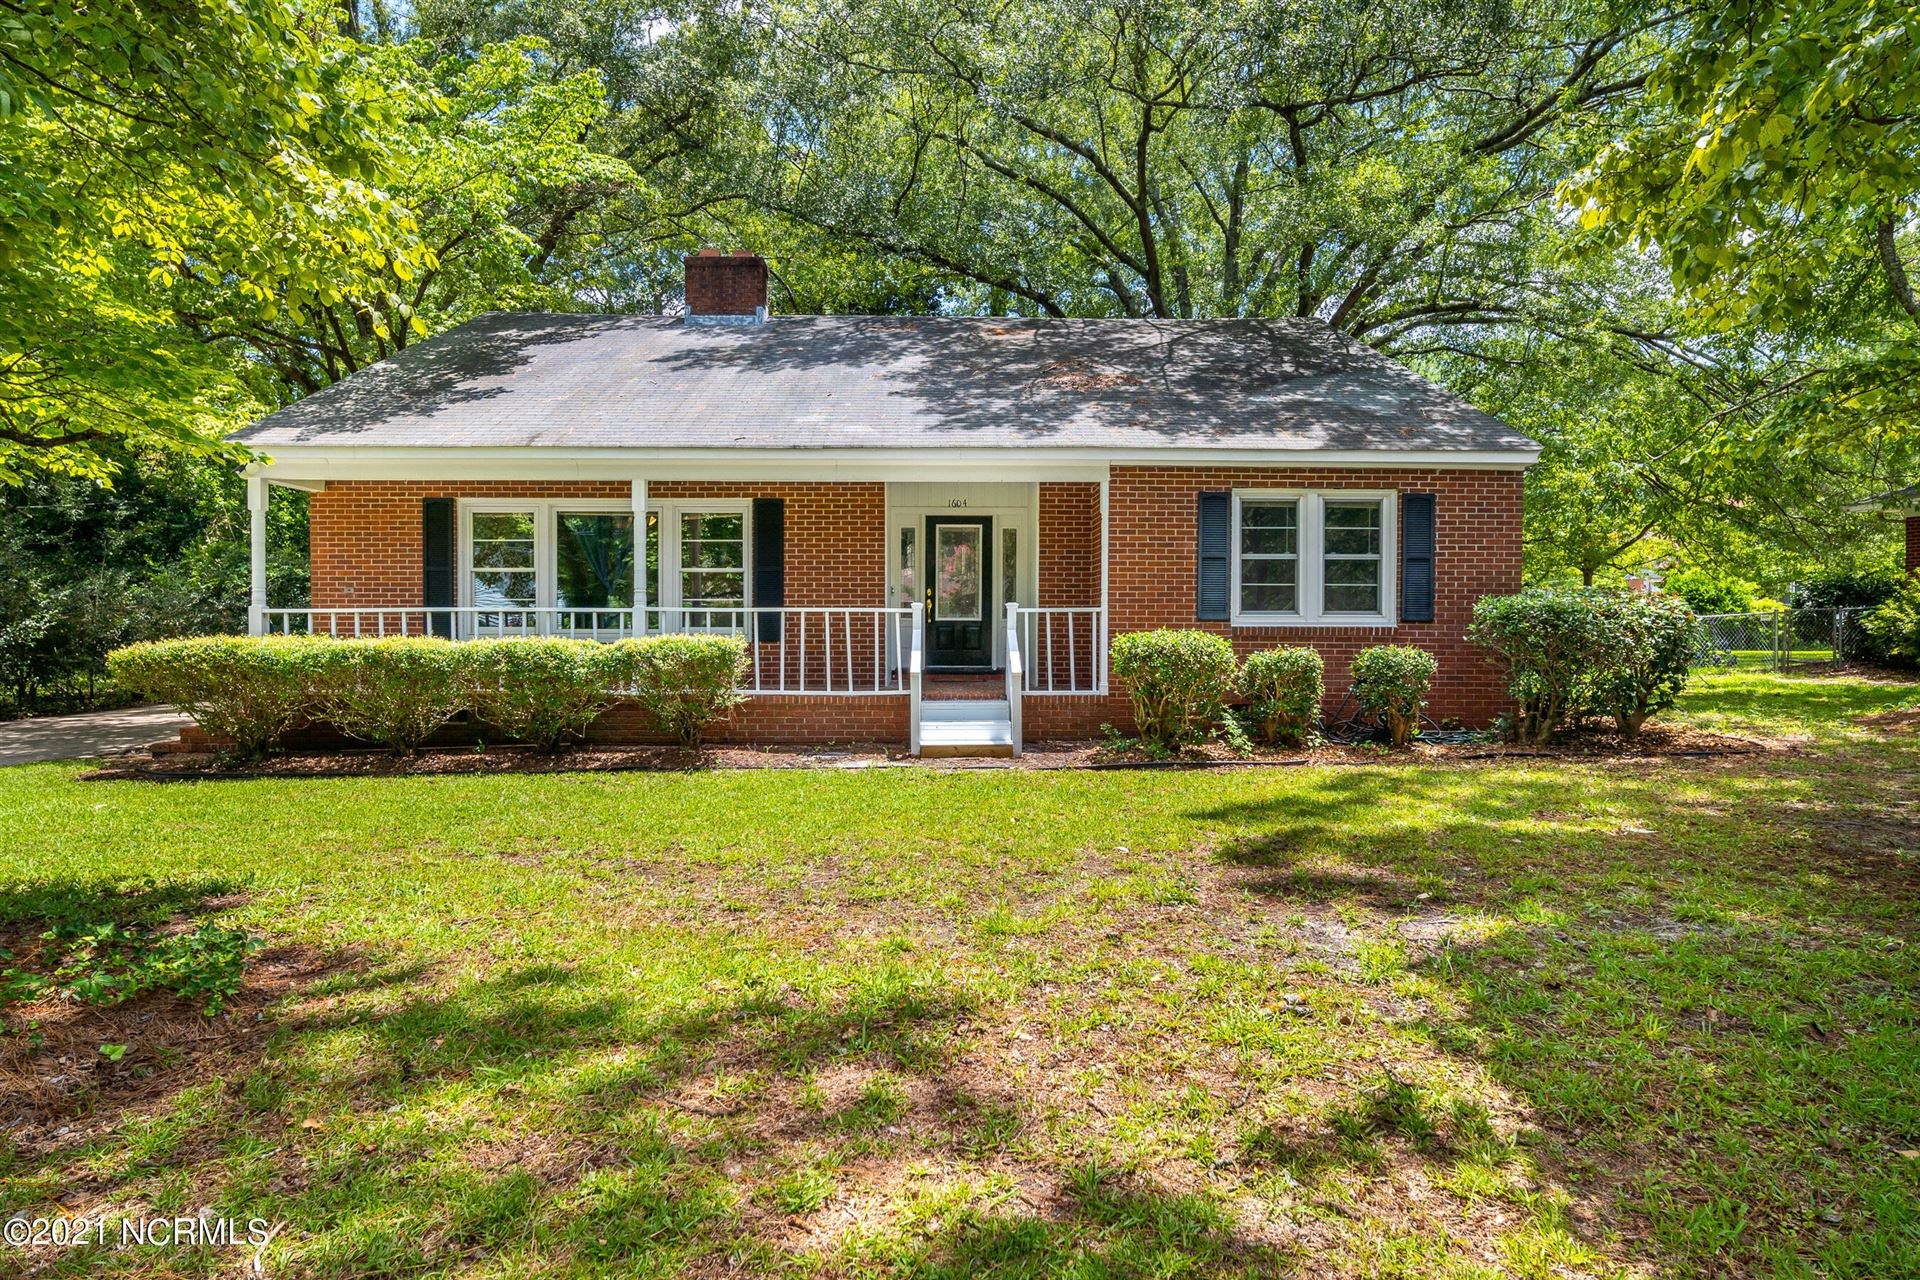 Photo of 1604 Beaumont Drive, Greenville, NC 27858 (MLS # 100280968)